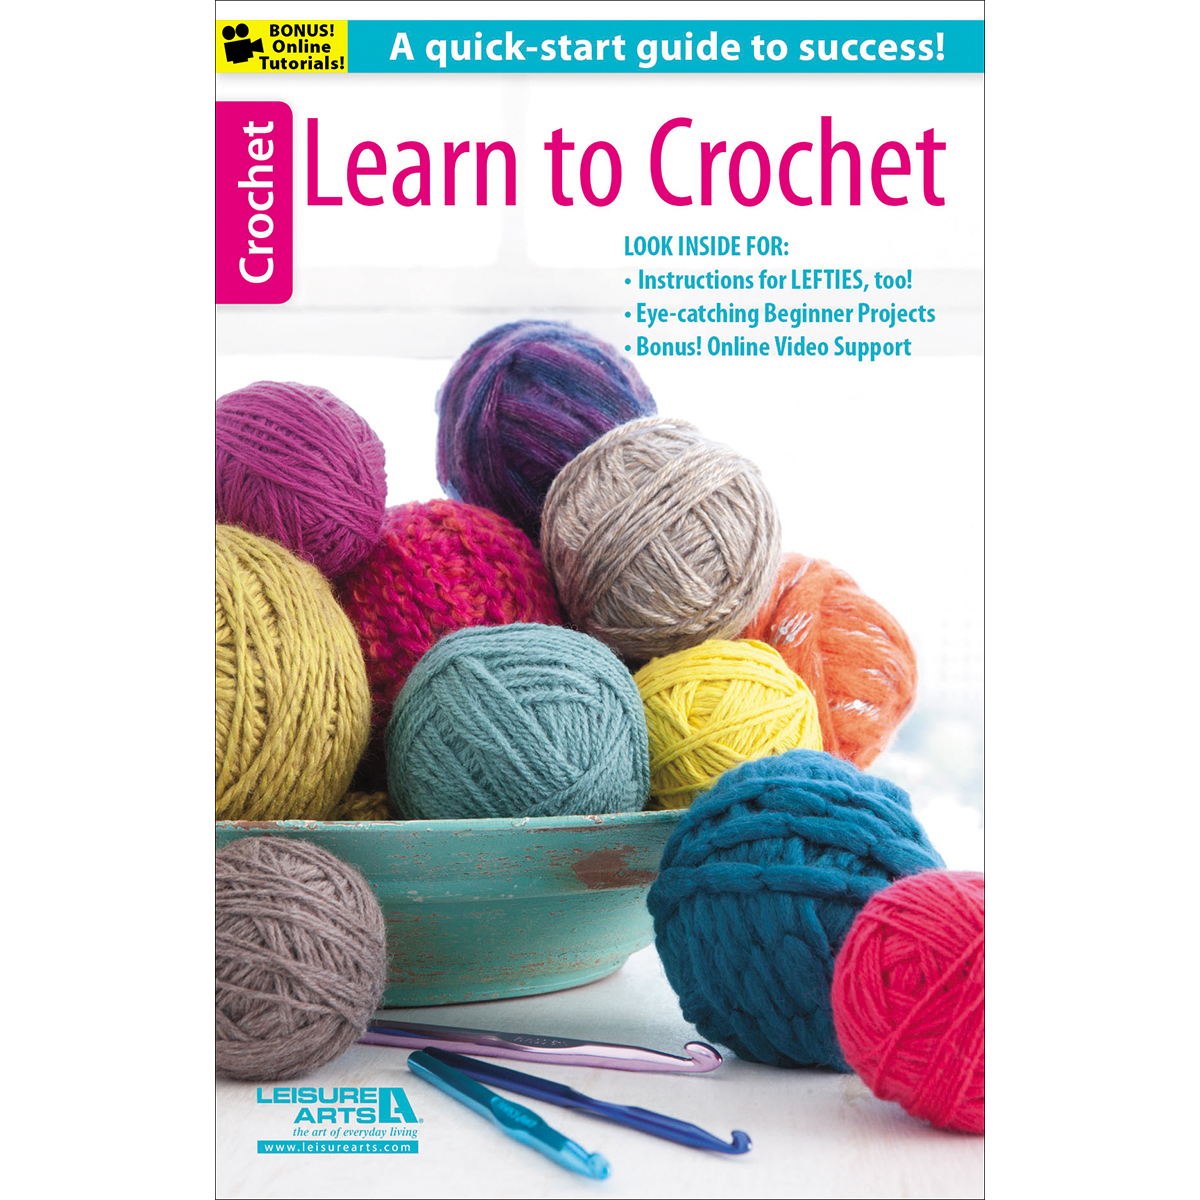 Crochet Learning : ... Crochet Patterns ? Crochet Books How to Crochet ? Leisure Arts Learn